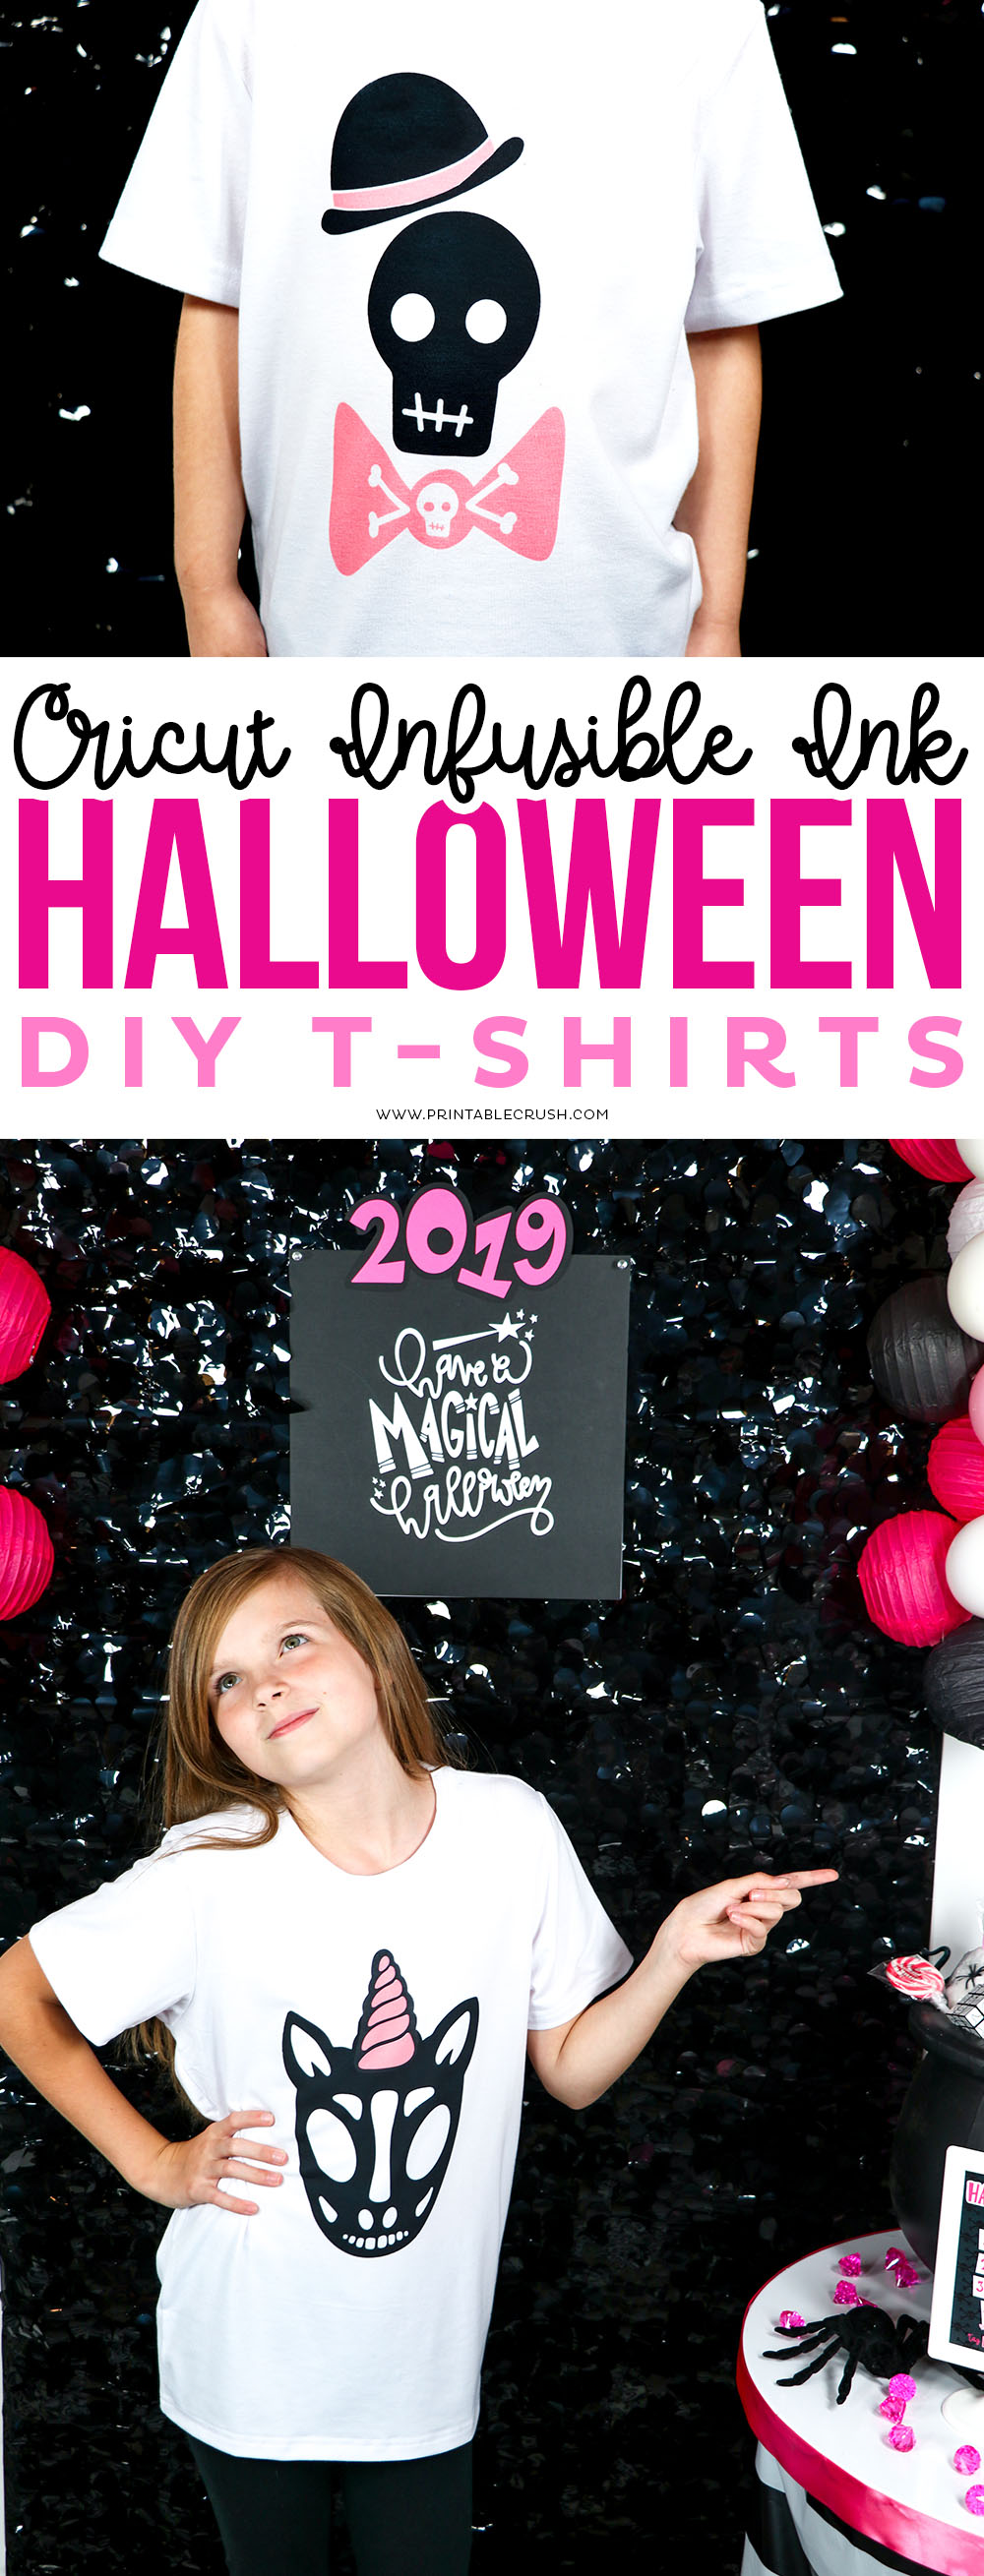 Use Cricut Infusible Ink to create these DIY Halloween T-shirts! Designs from the GLAM Halloween SVG File collection make these fun and unique. #cricutinfusibleink #cricuteasypress2 #halloweentshirt #halloweencraft #halloweensvgfiles via @printablecrush